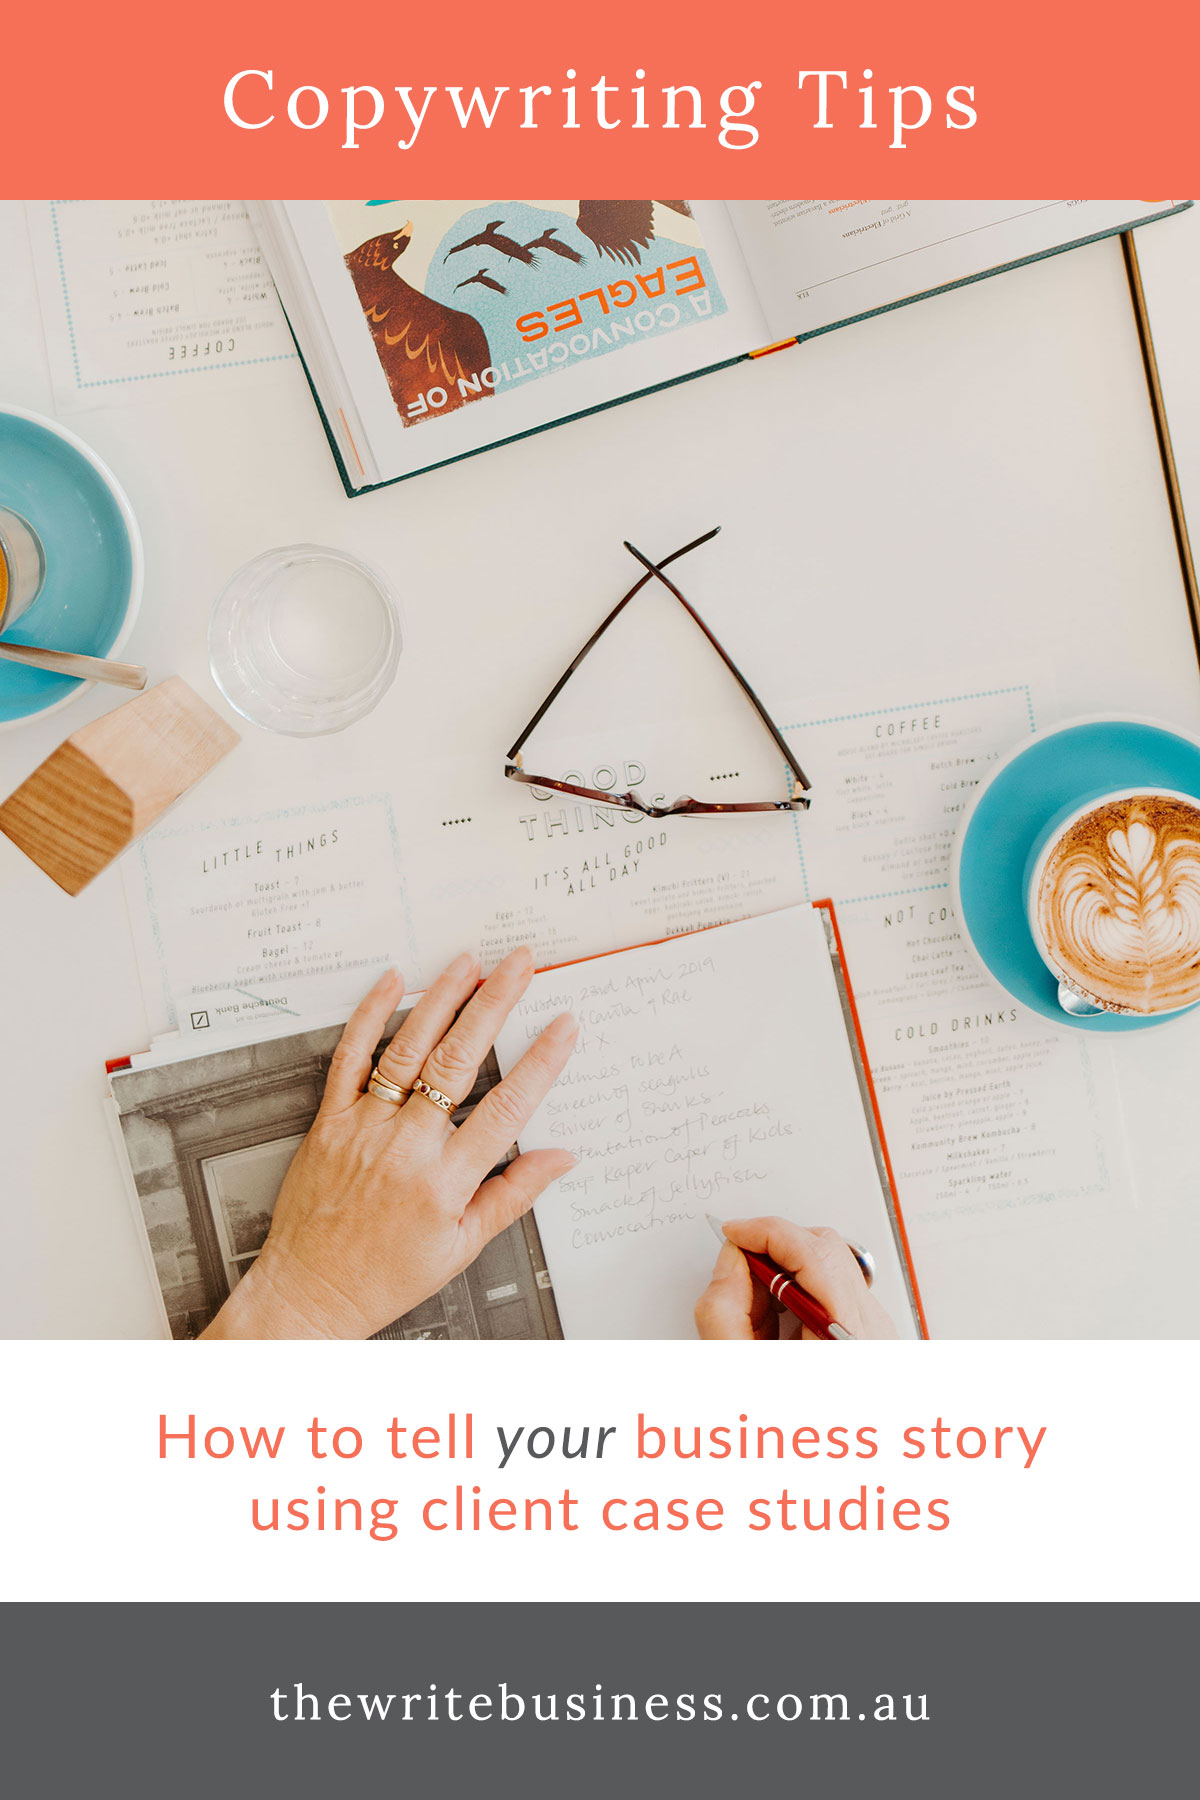 How to tell your business story using client case studies